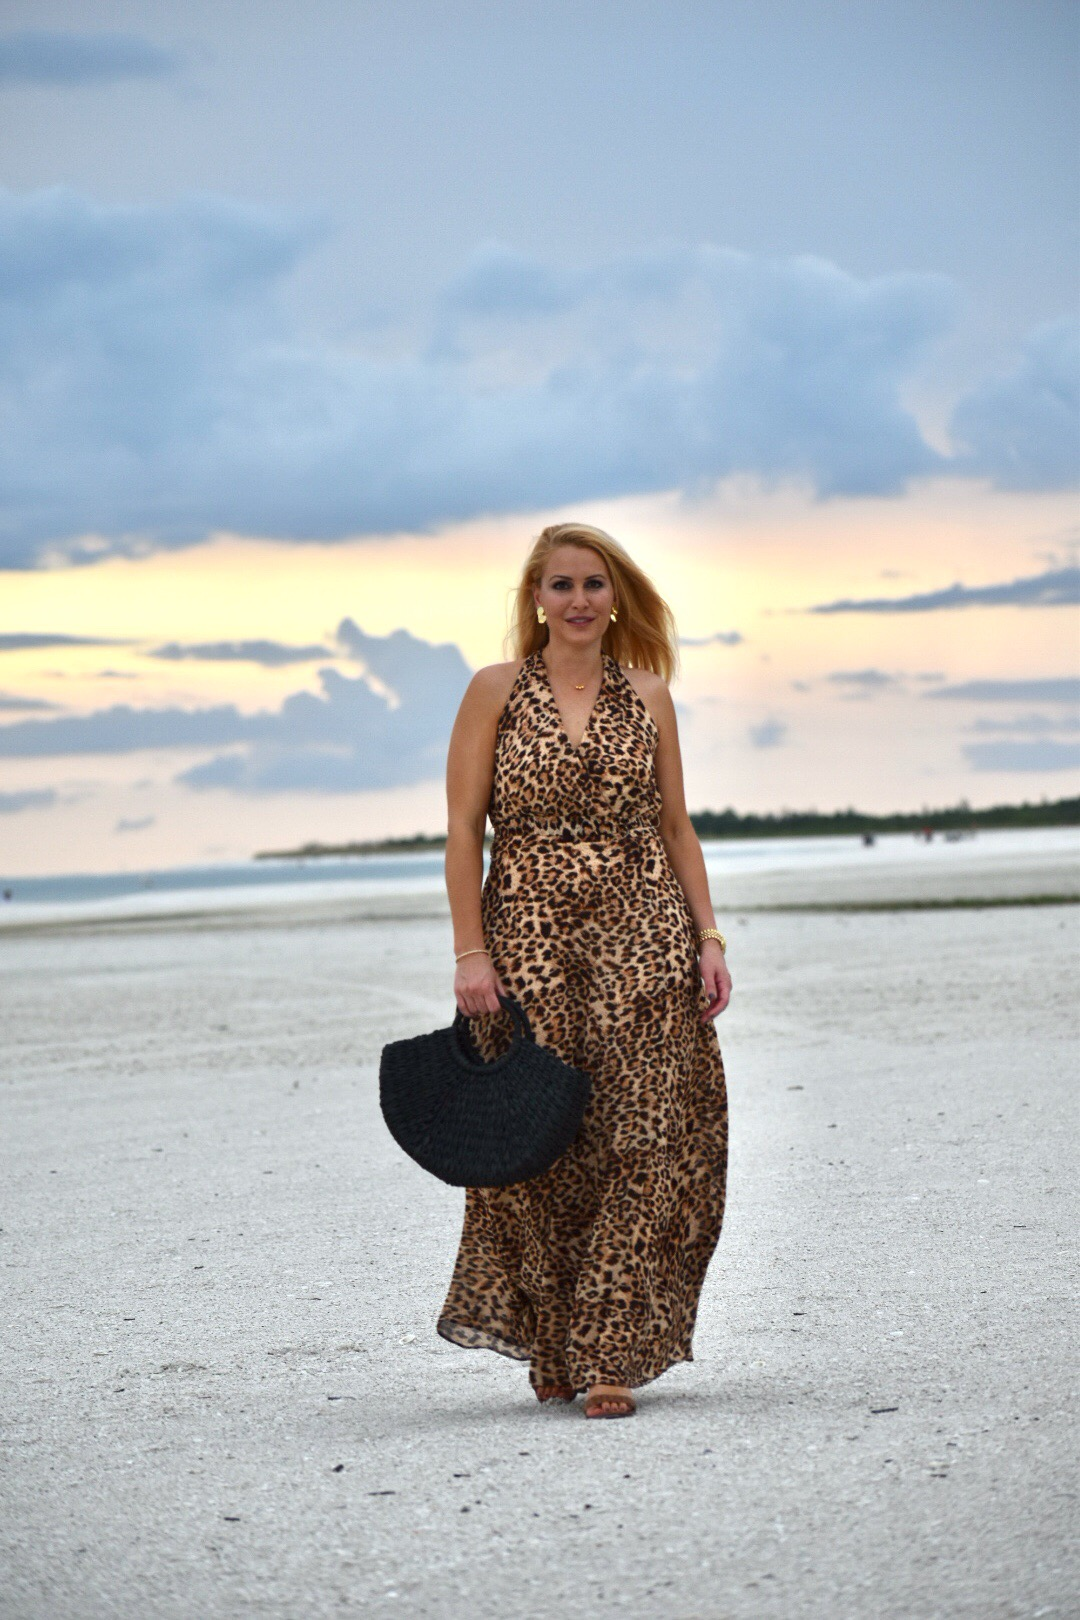 Leopard Outfit, Leopard Dress, Chetta B Leopard Print Dress, Gorjana Jewelry and Black Straw Tote in Marco Island Florida